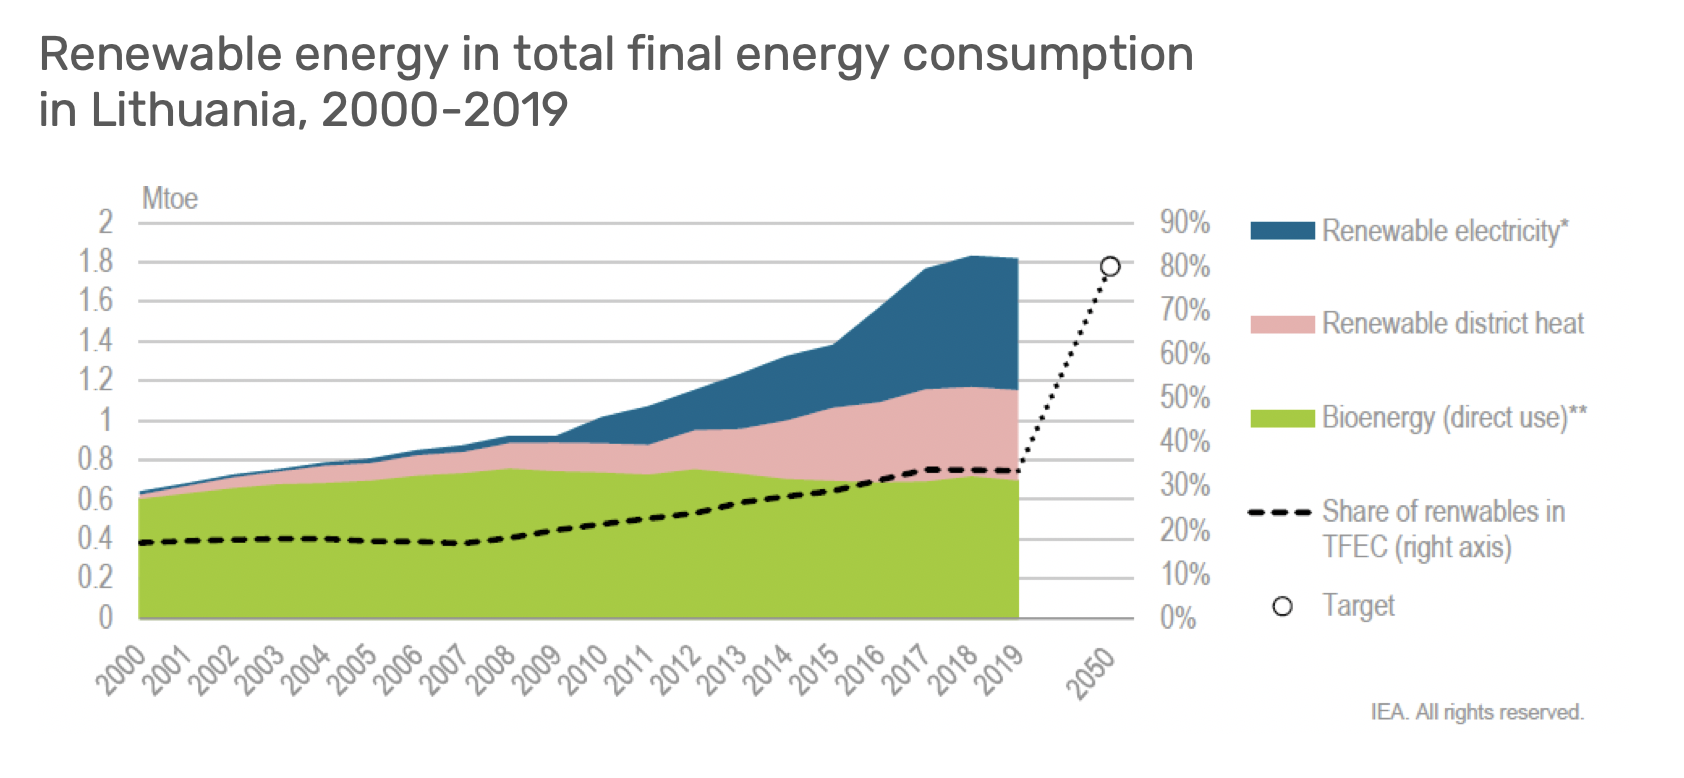 Renewable energy in total final energy consumption in Lithuania